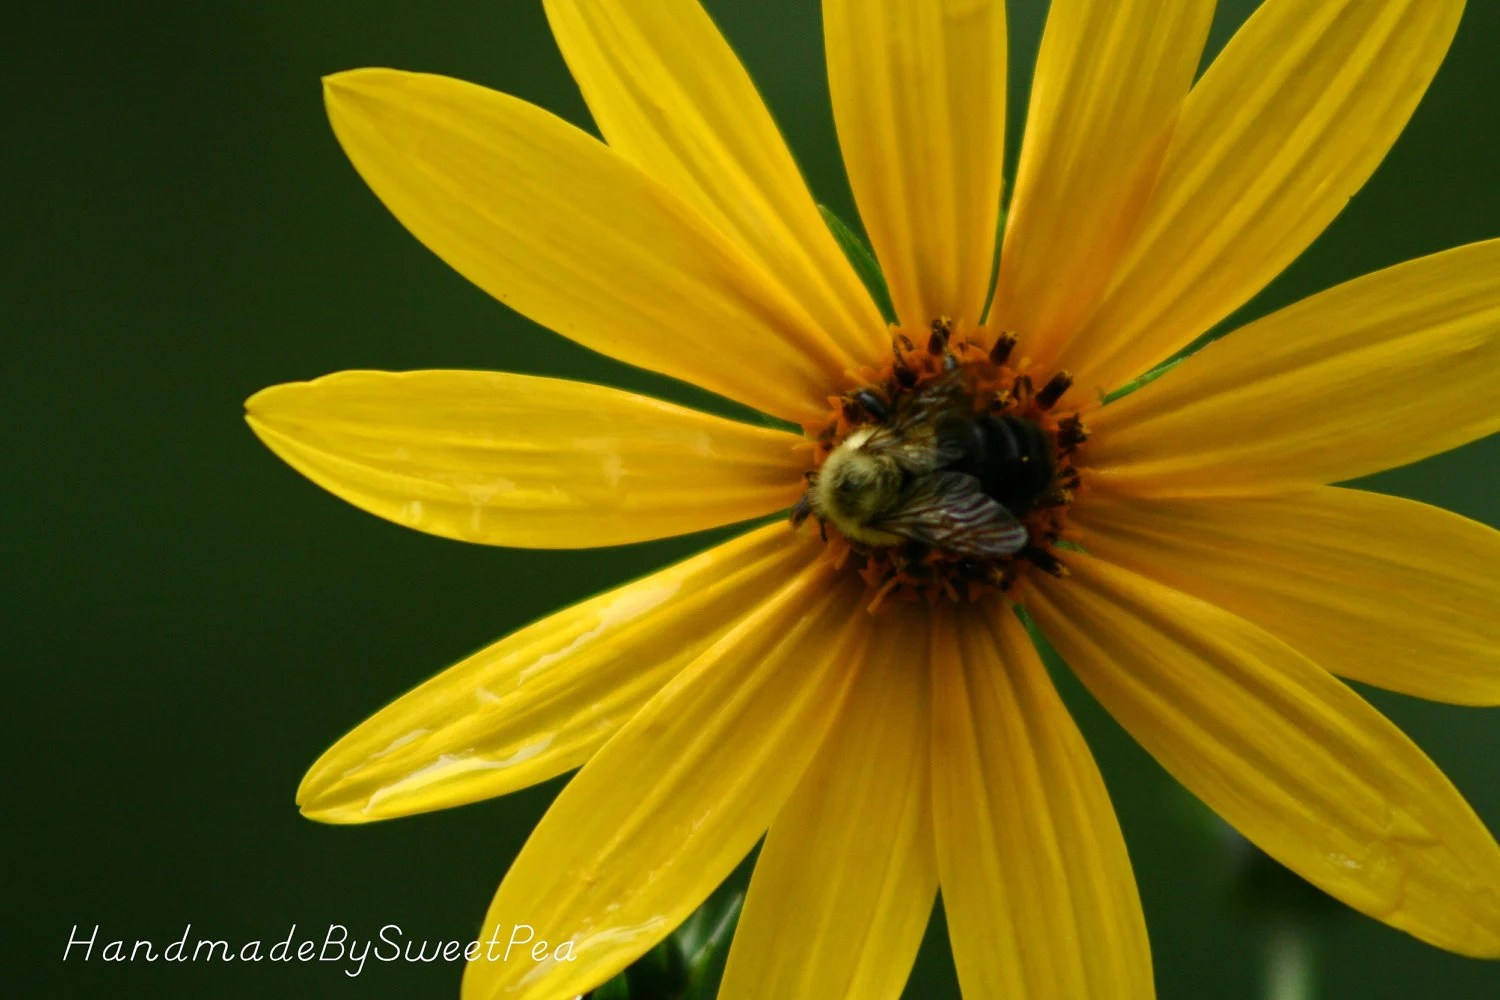 Yellow Flowers, Bee, Insect, Resting, Summer, Dreamy, Nature, Photography, Home Decor, Outdoors